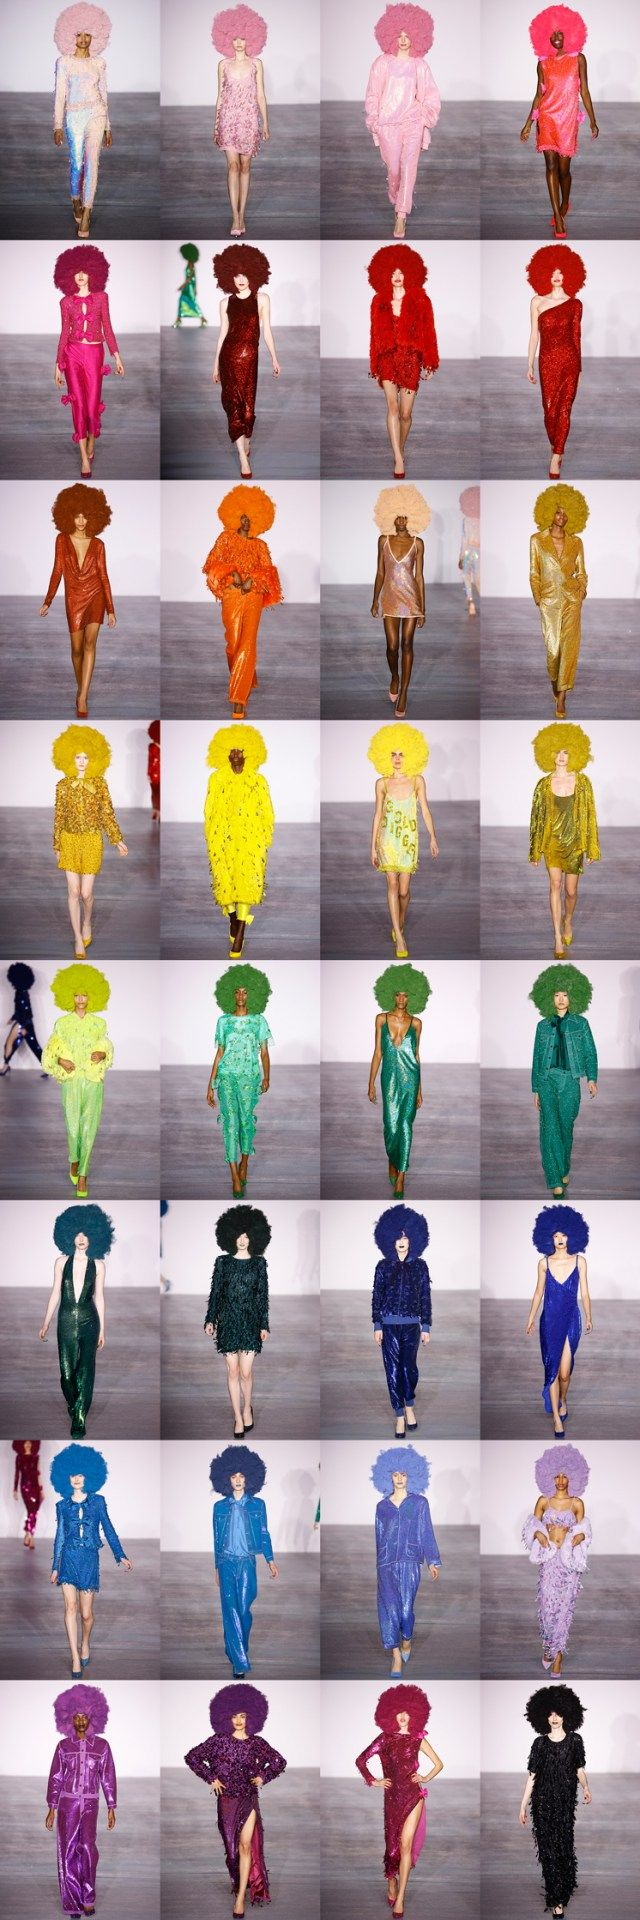 Fro the rainbow - http://www.vogue.com/fashion-shows/fall-2016-ready-to-wear/ashish/slideshow/collection THE BEST